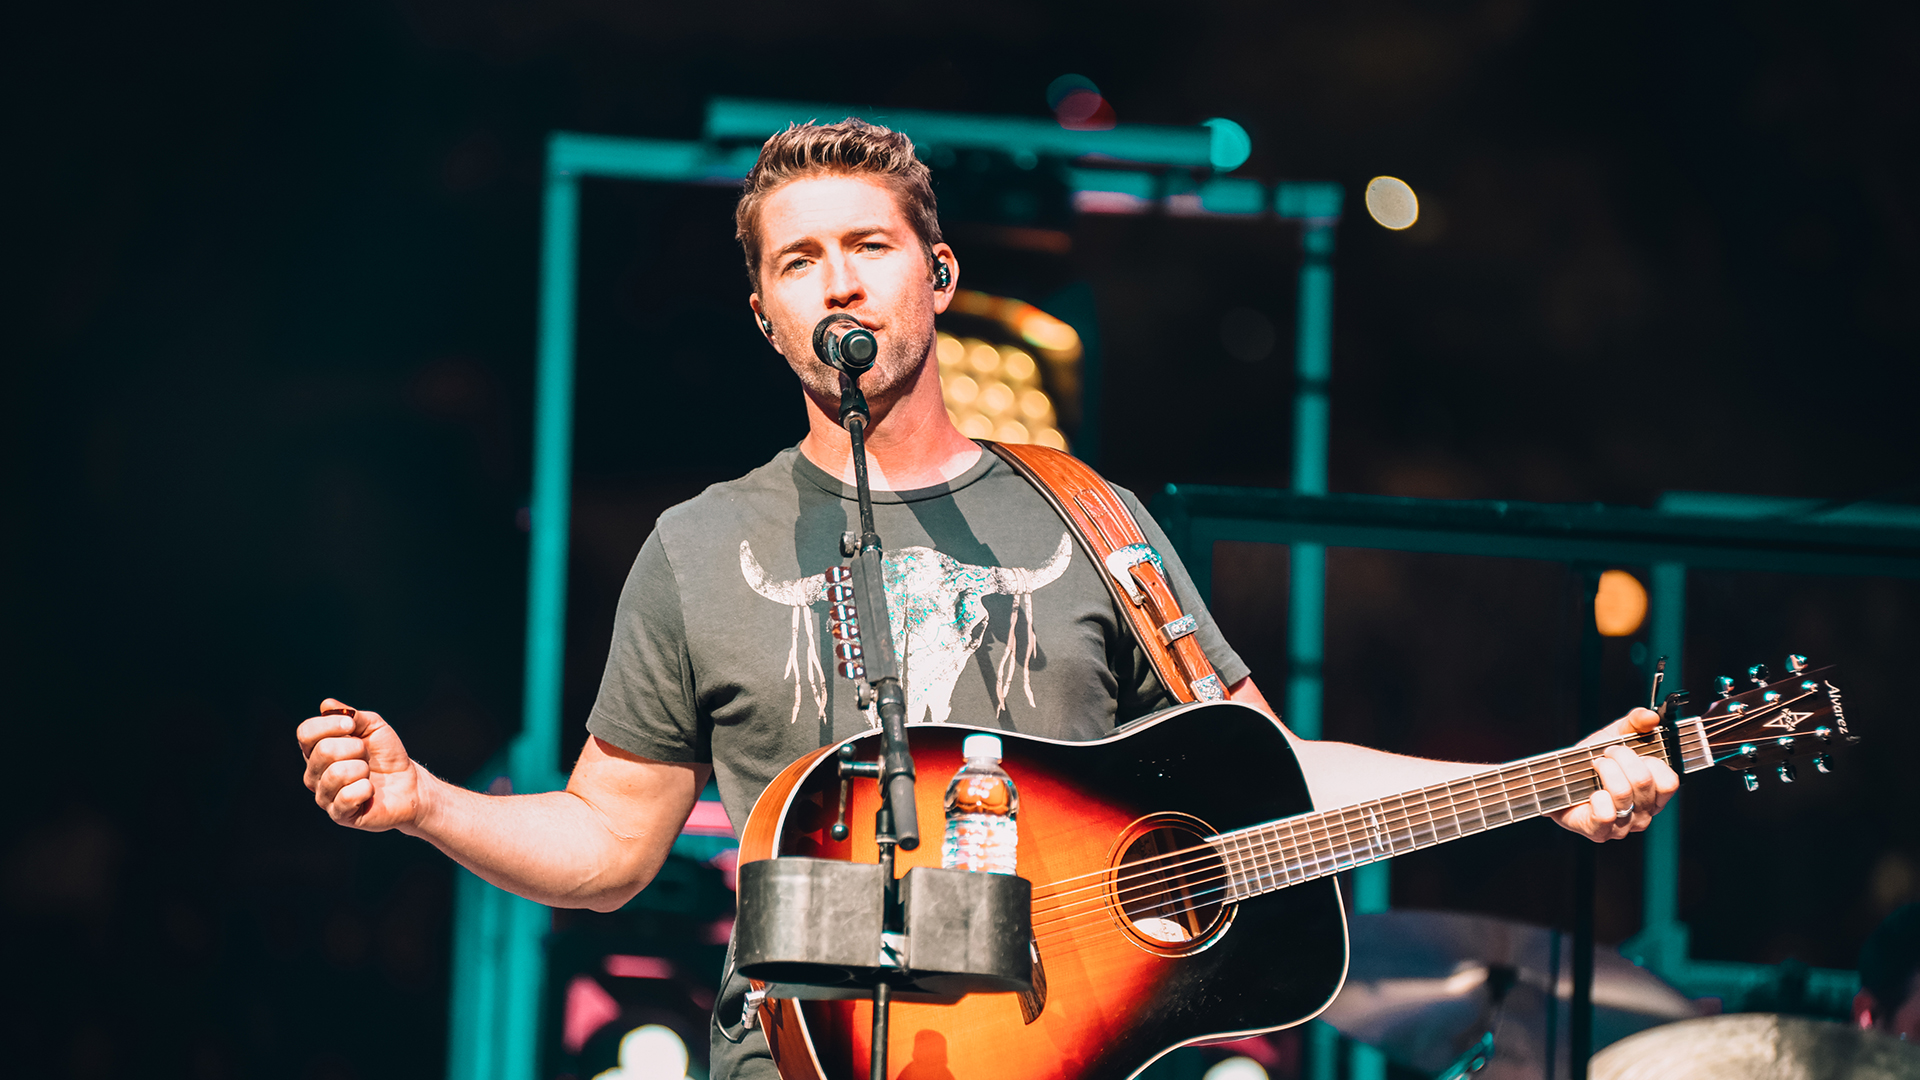 Josh Turner [CANCELLED] at NYCB Theatre at Westbury